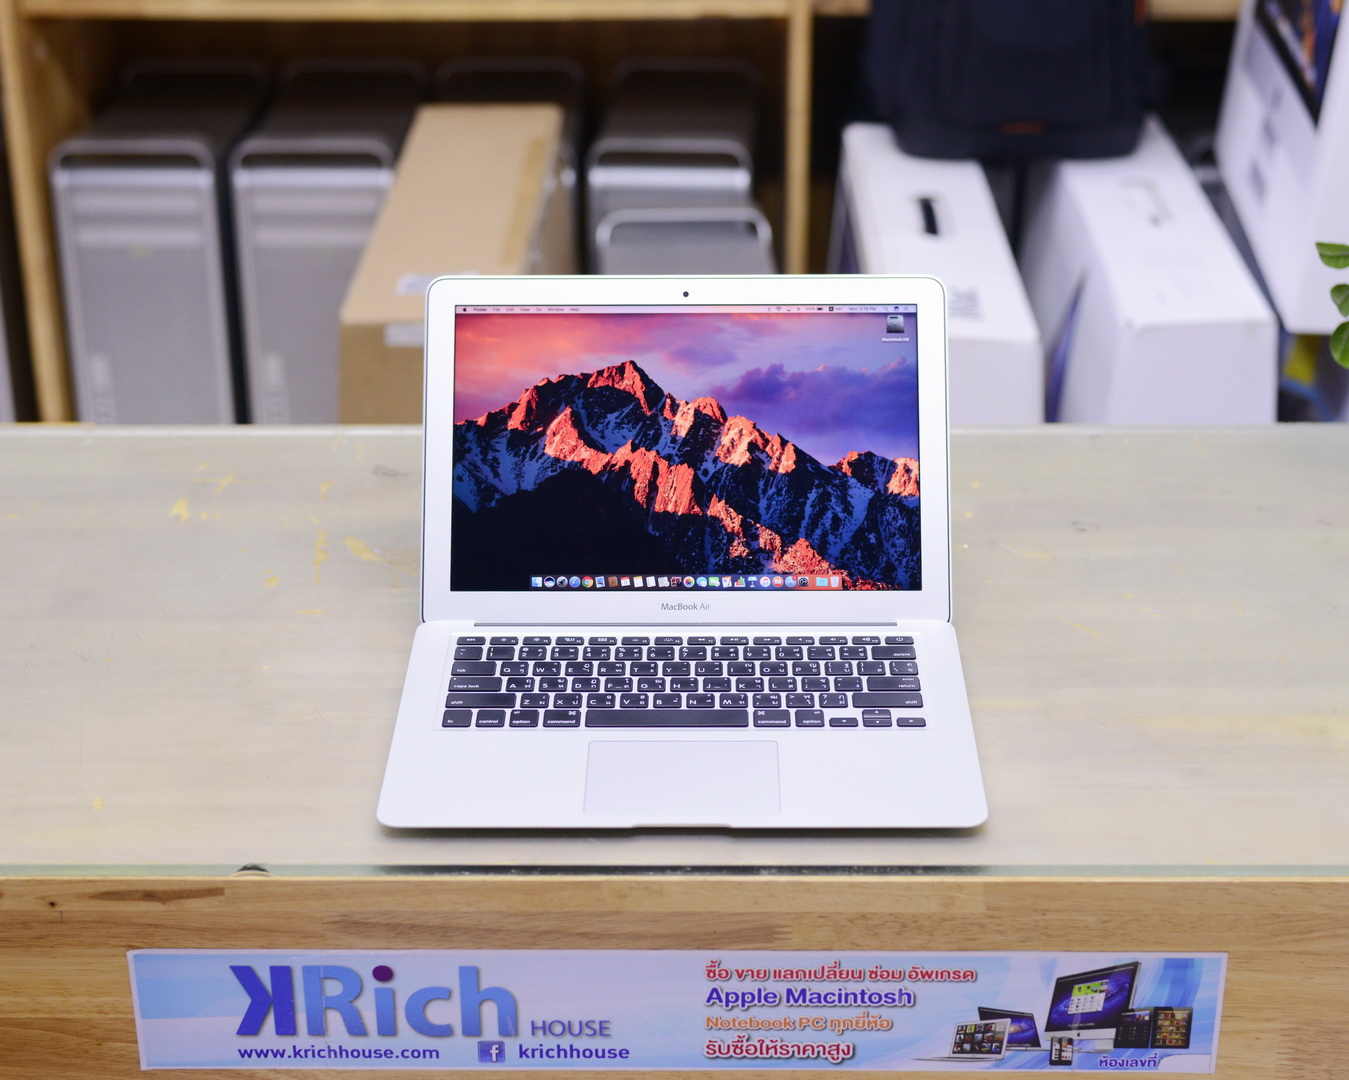 MacBook Air (13-inch, Mid 2017) - Core i5 1.8GHz RAM 8GB SSD 128GB - Apple Warranty 21-08-2018